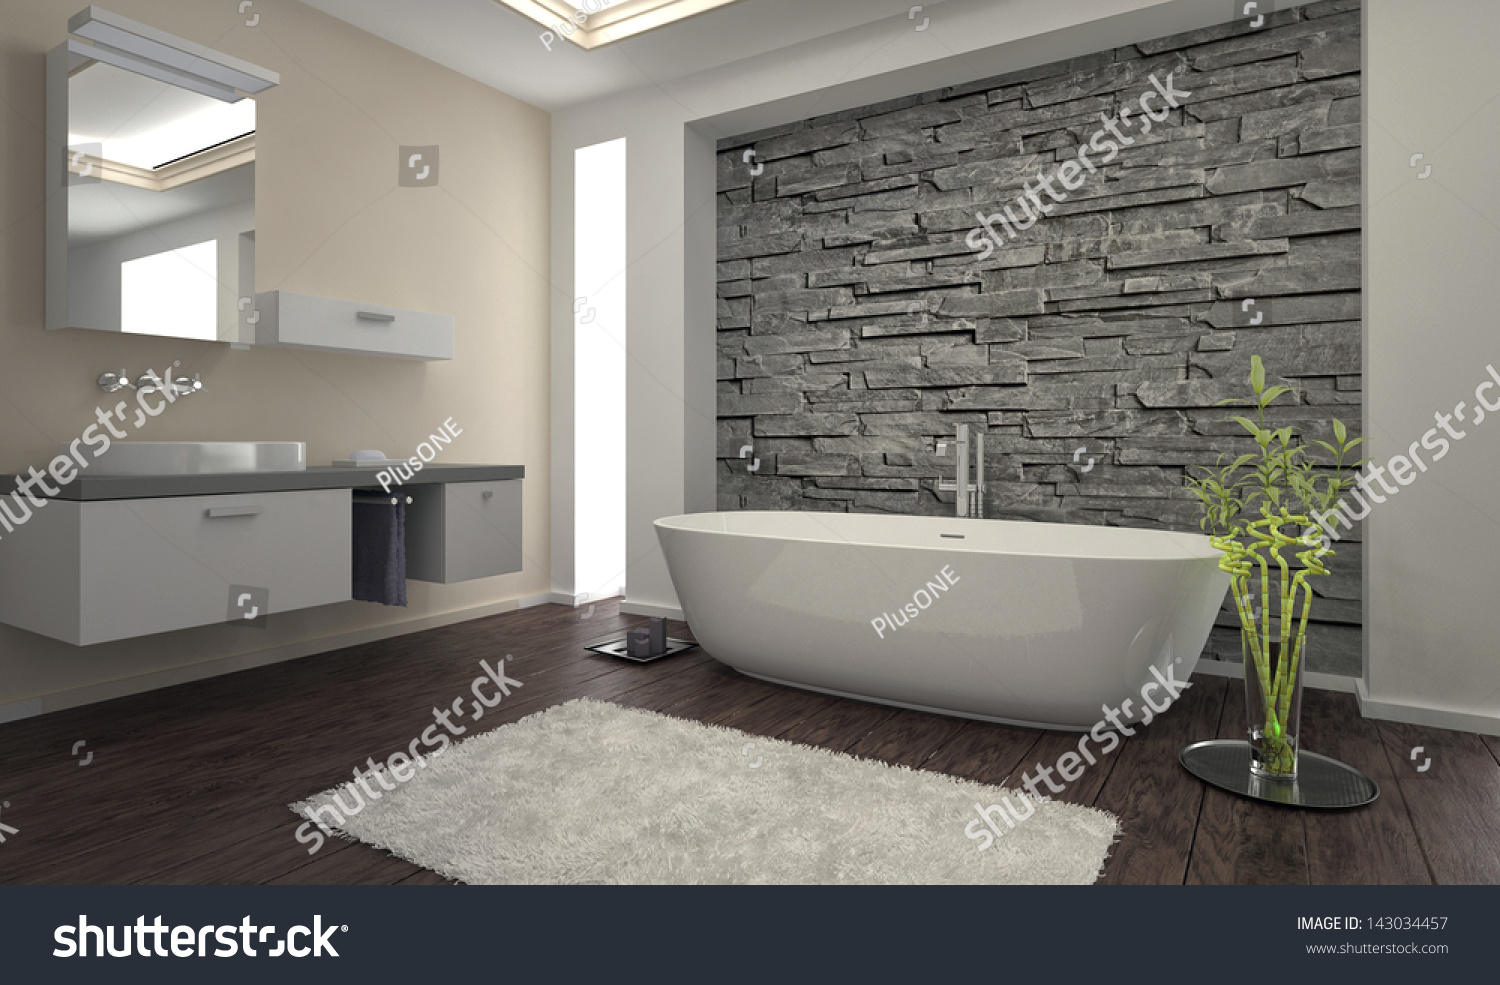 Modern design bathroom with stone wall and bathtub. Modern Design Bathroom Stone Wall Bathtub Stock Photo 143034457